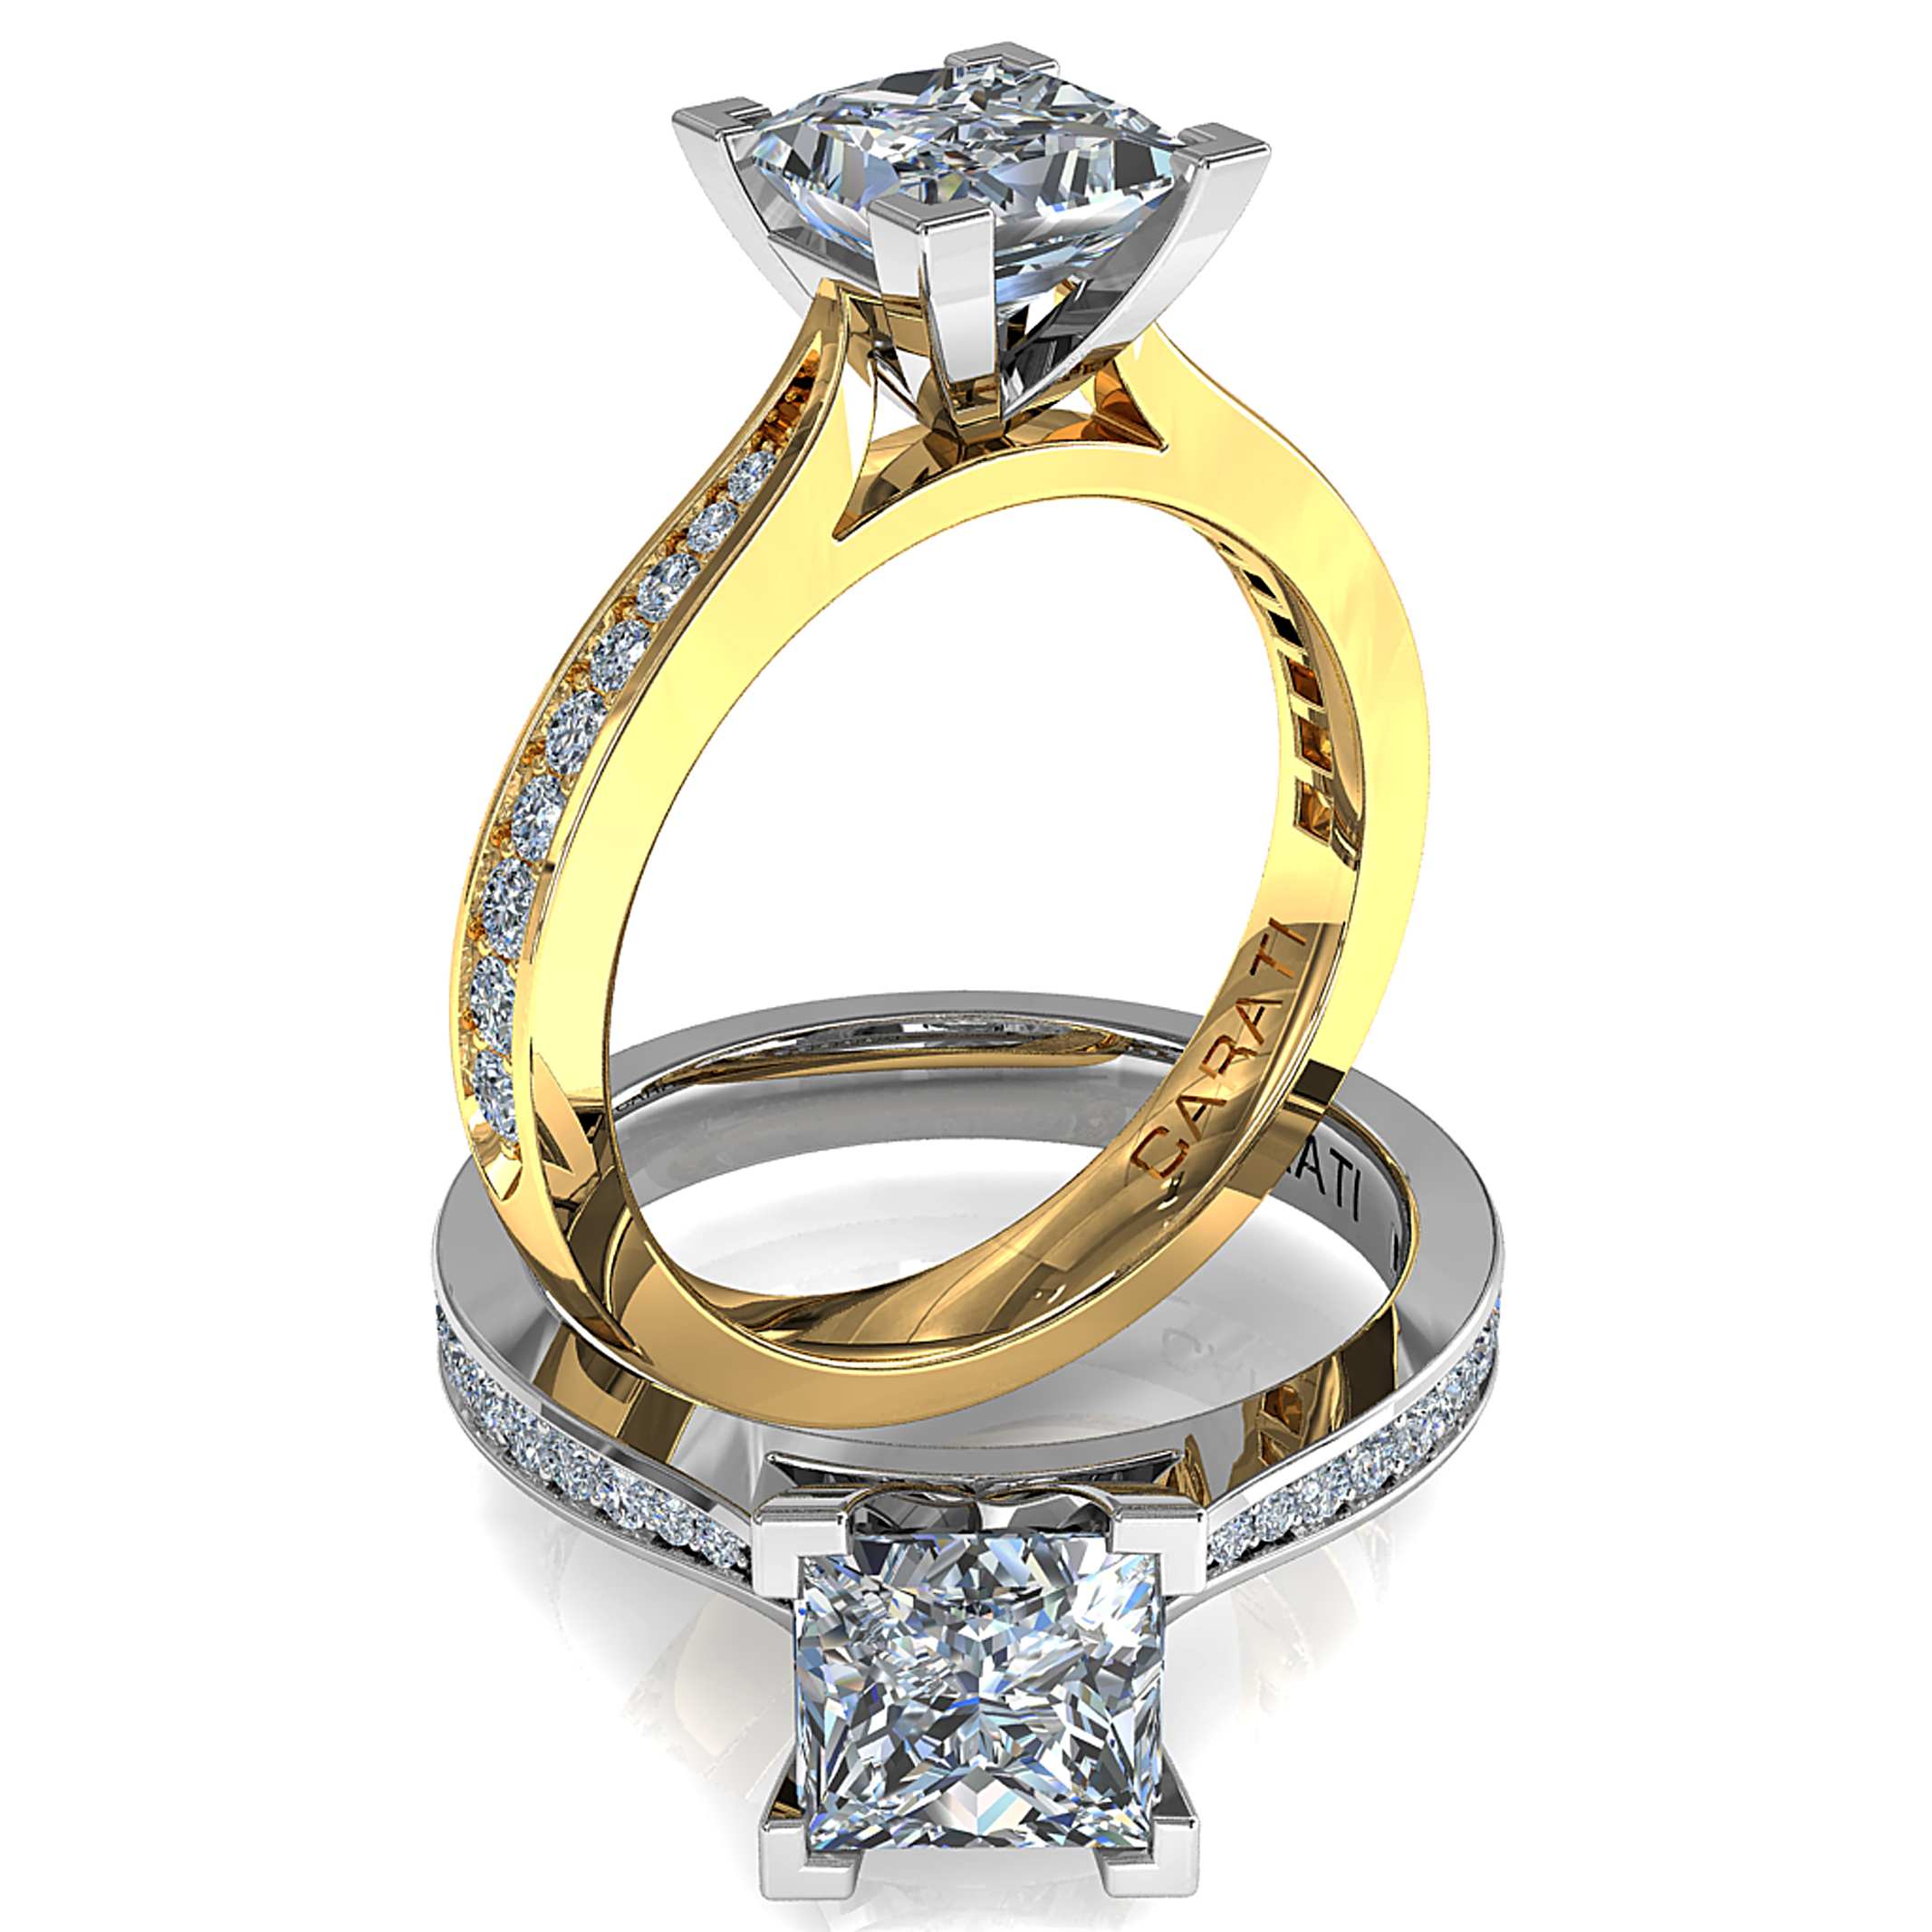 Princess Cut Solitaire Diamond Engagement Ring, 4 Corner Claws on a Tapered Bead Set Band with Classic Underrail Setting.